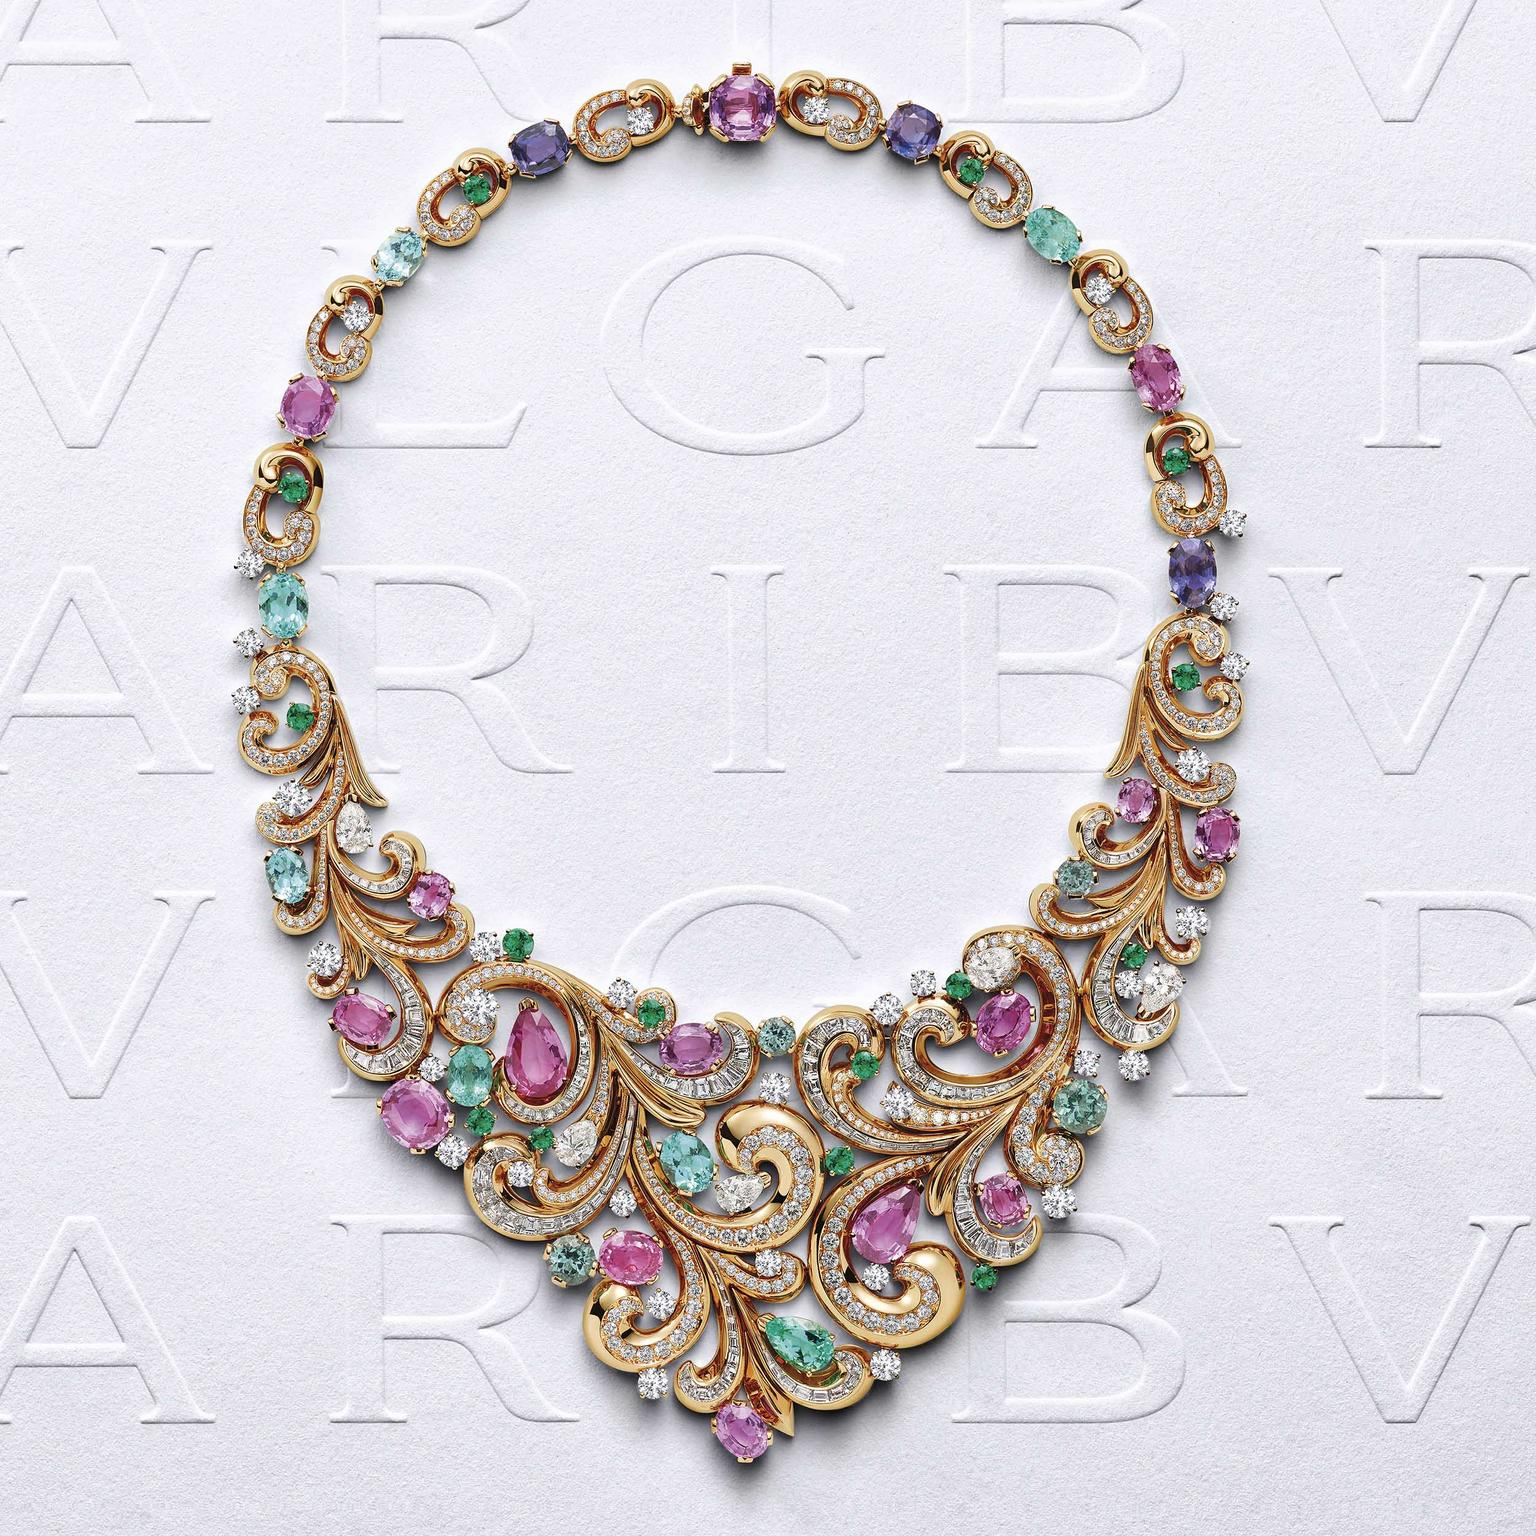 Bulgari Barocko Lady Arabesque necklace